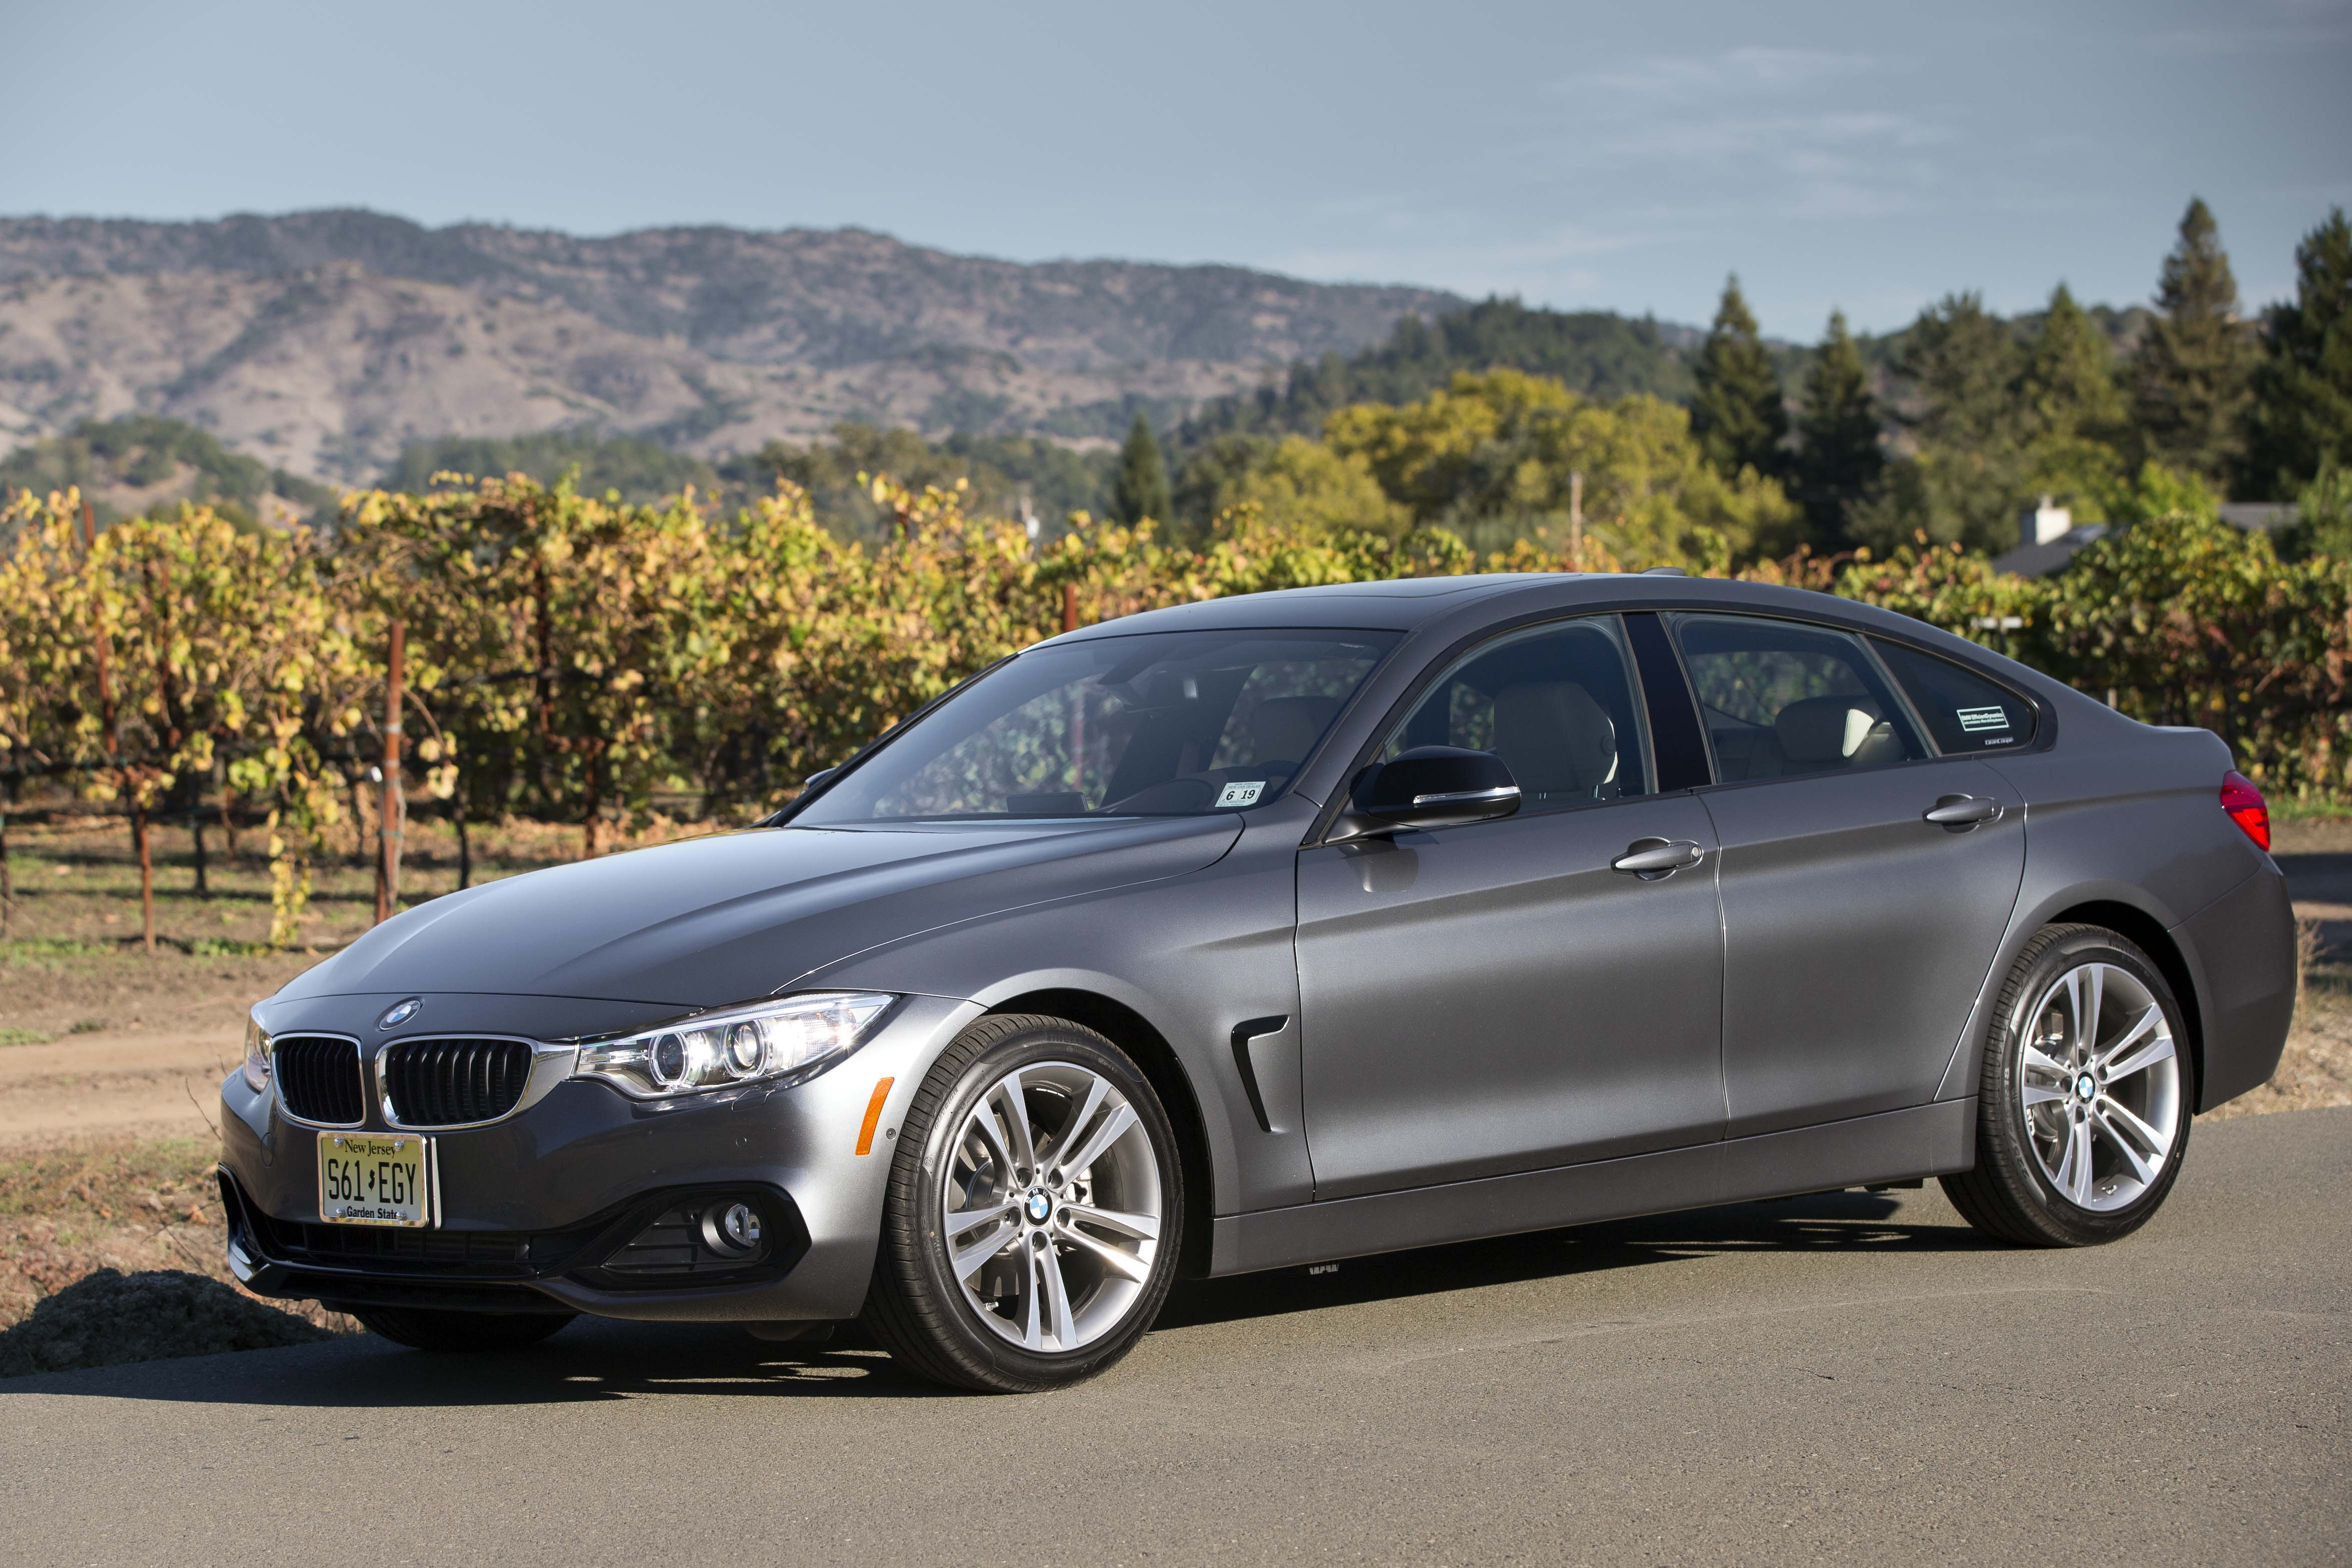 2016 Bmw 4 Series Gran Coupe #17